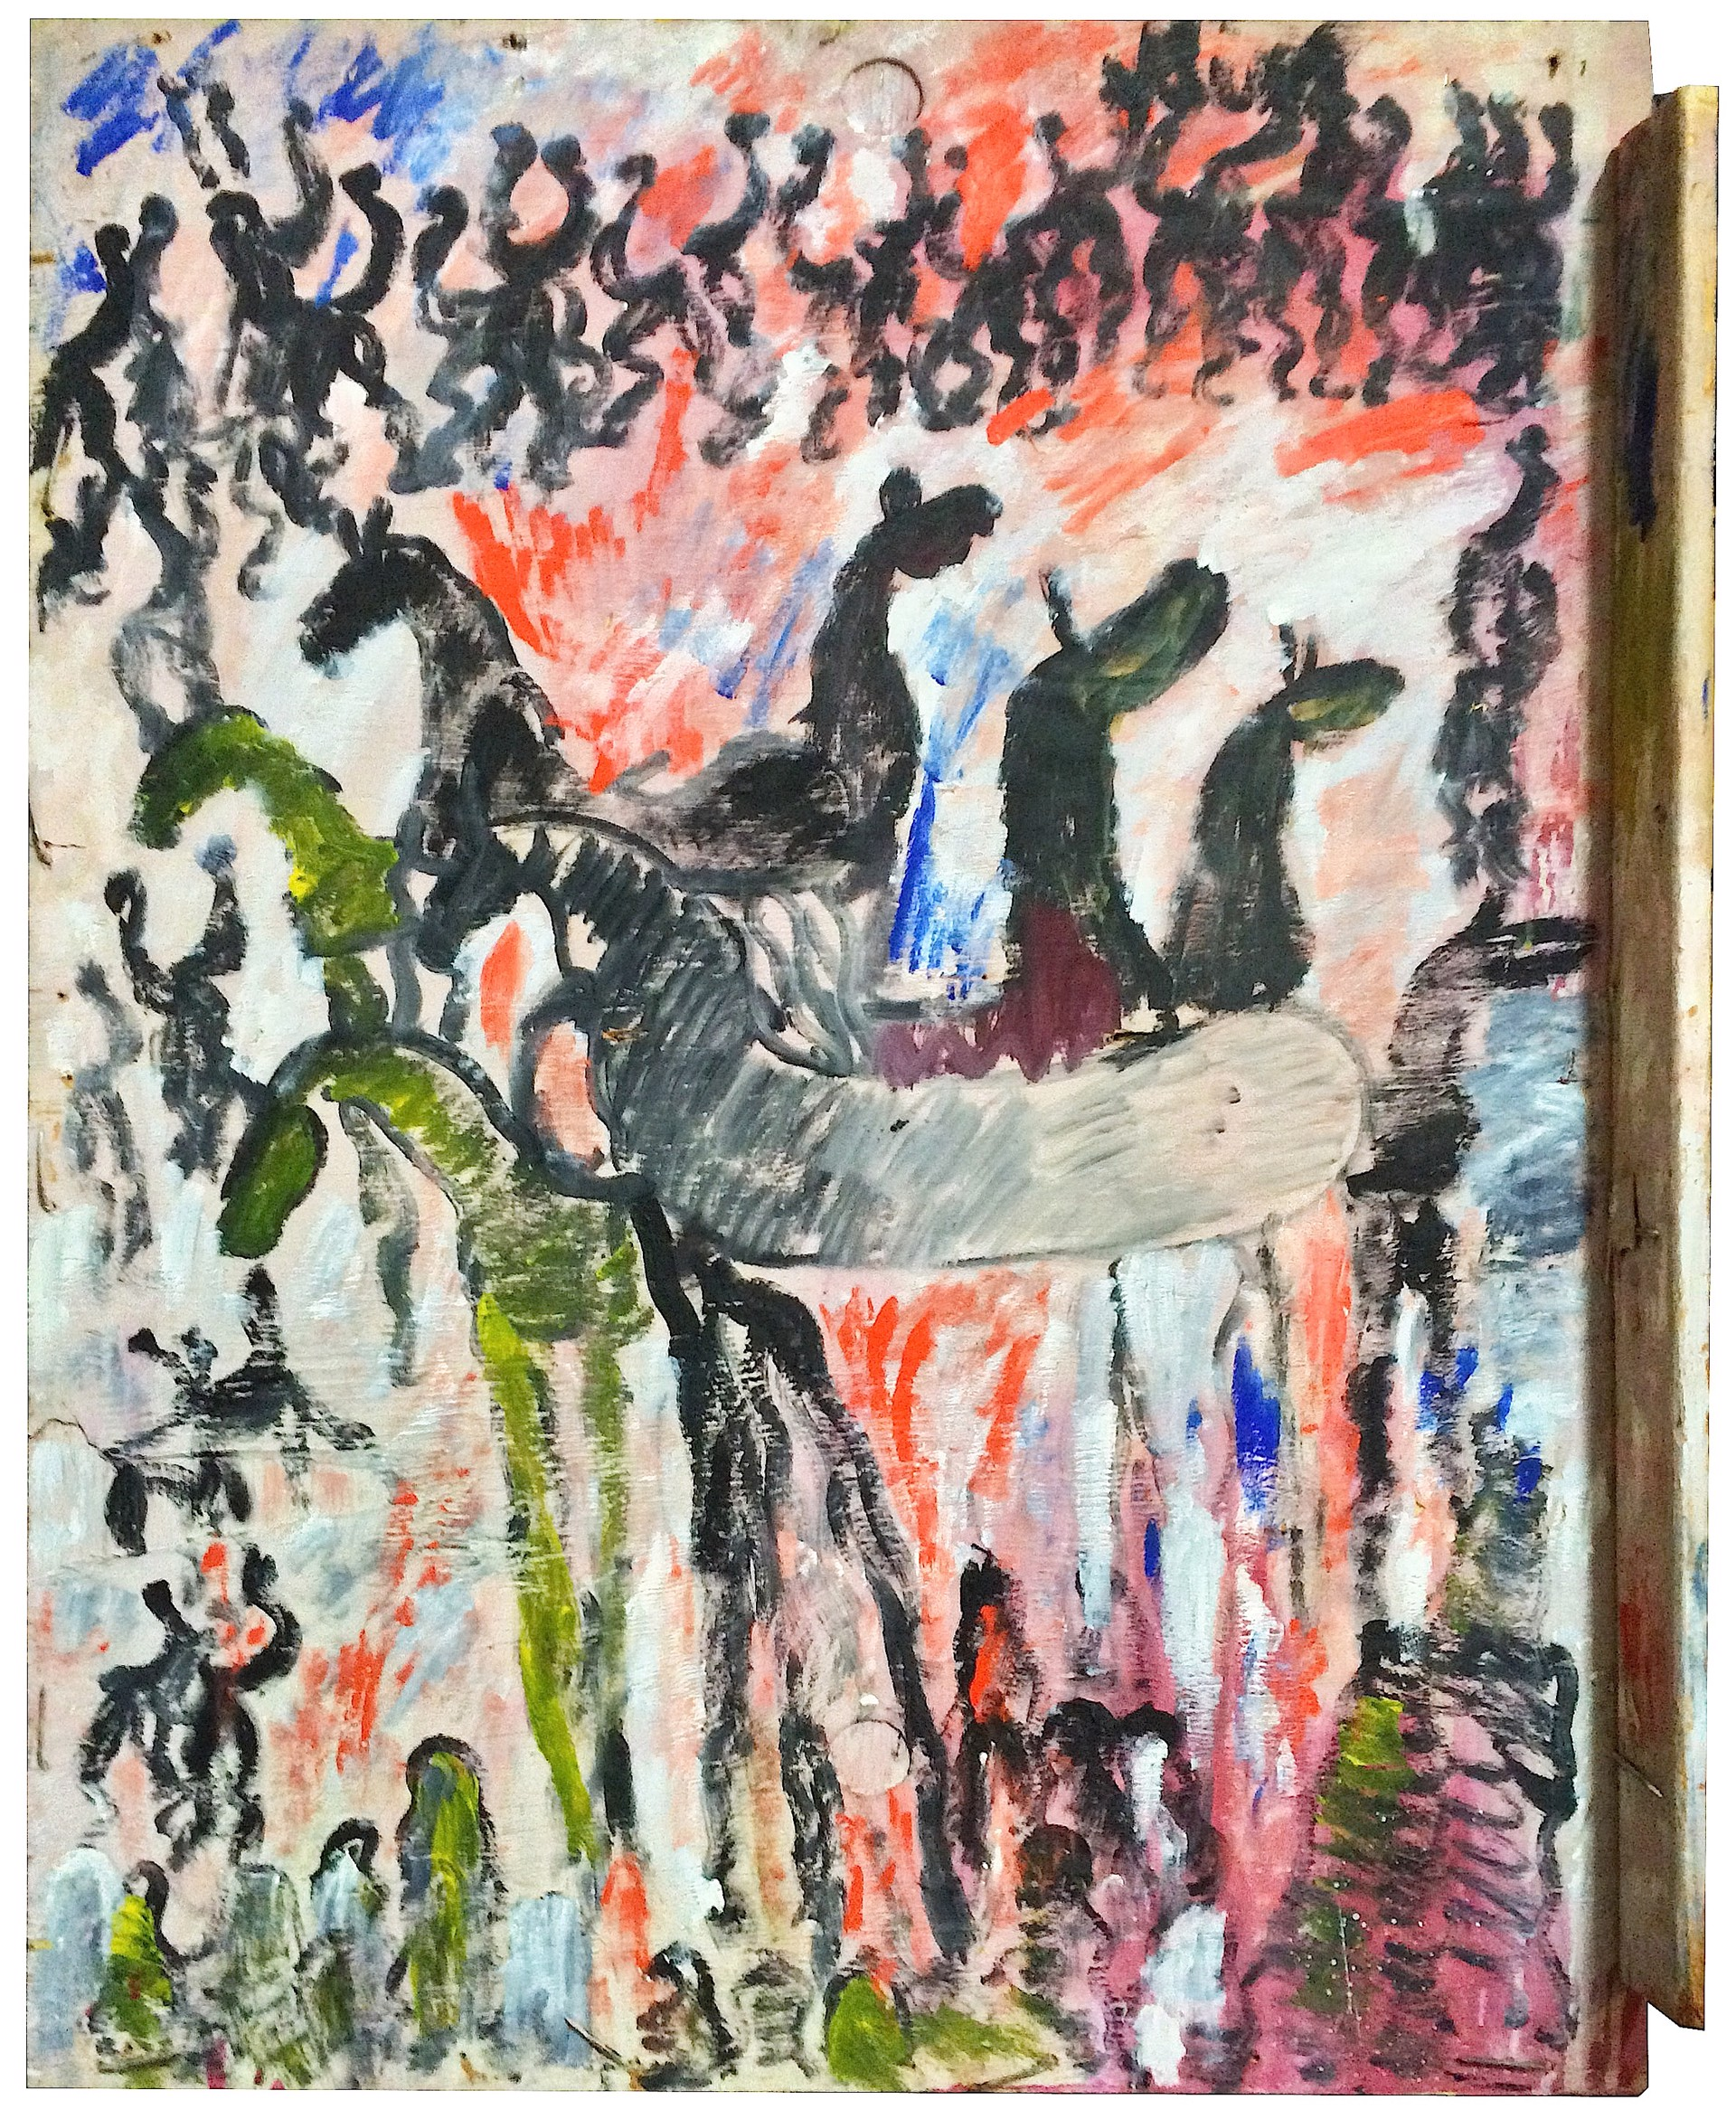 Wild Horses (on Dayglo) by Purvis Young